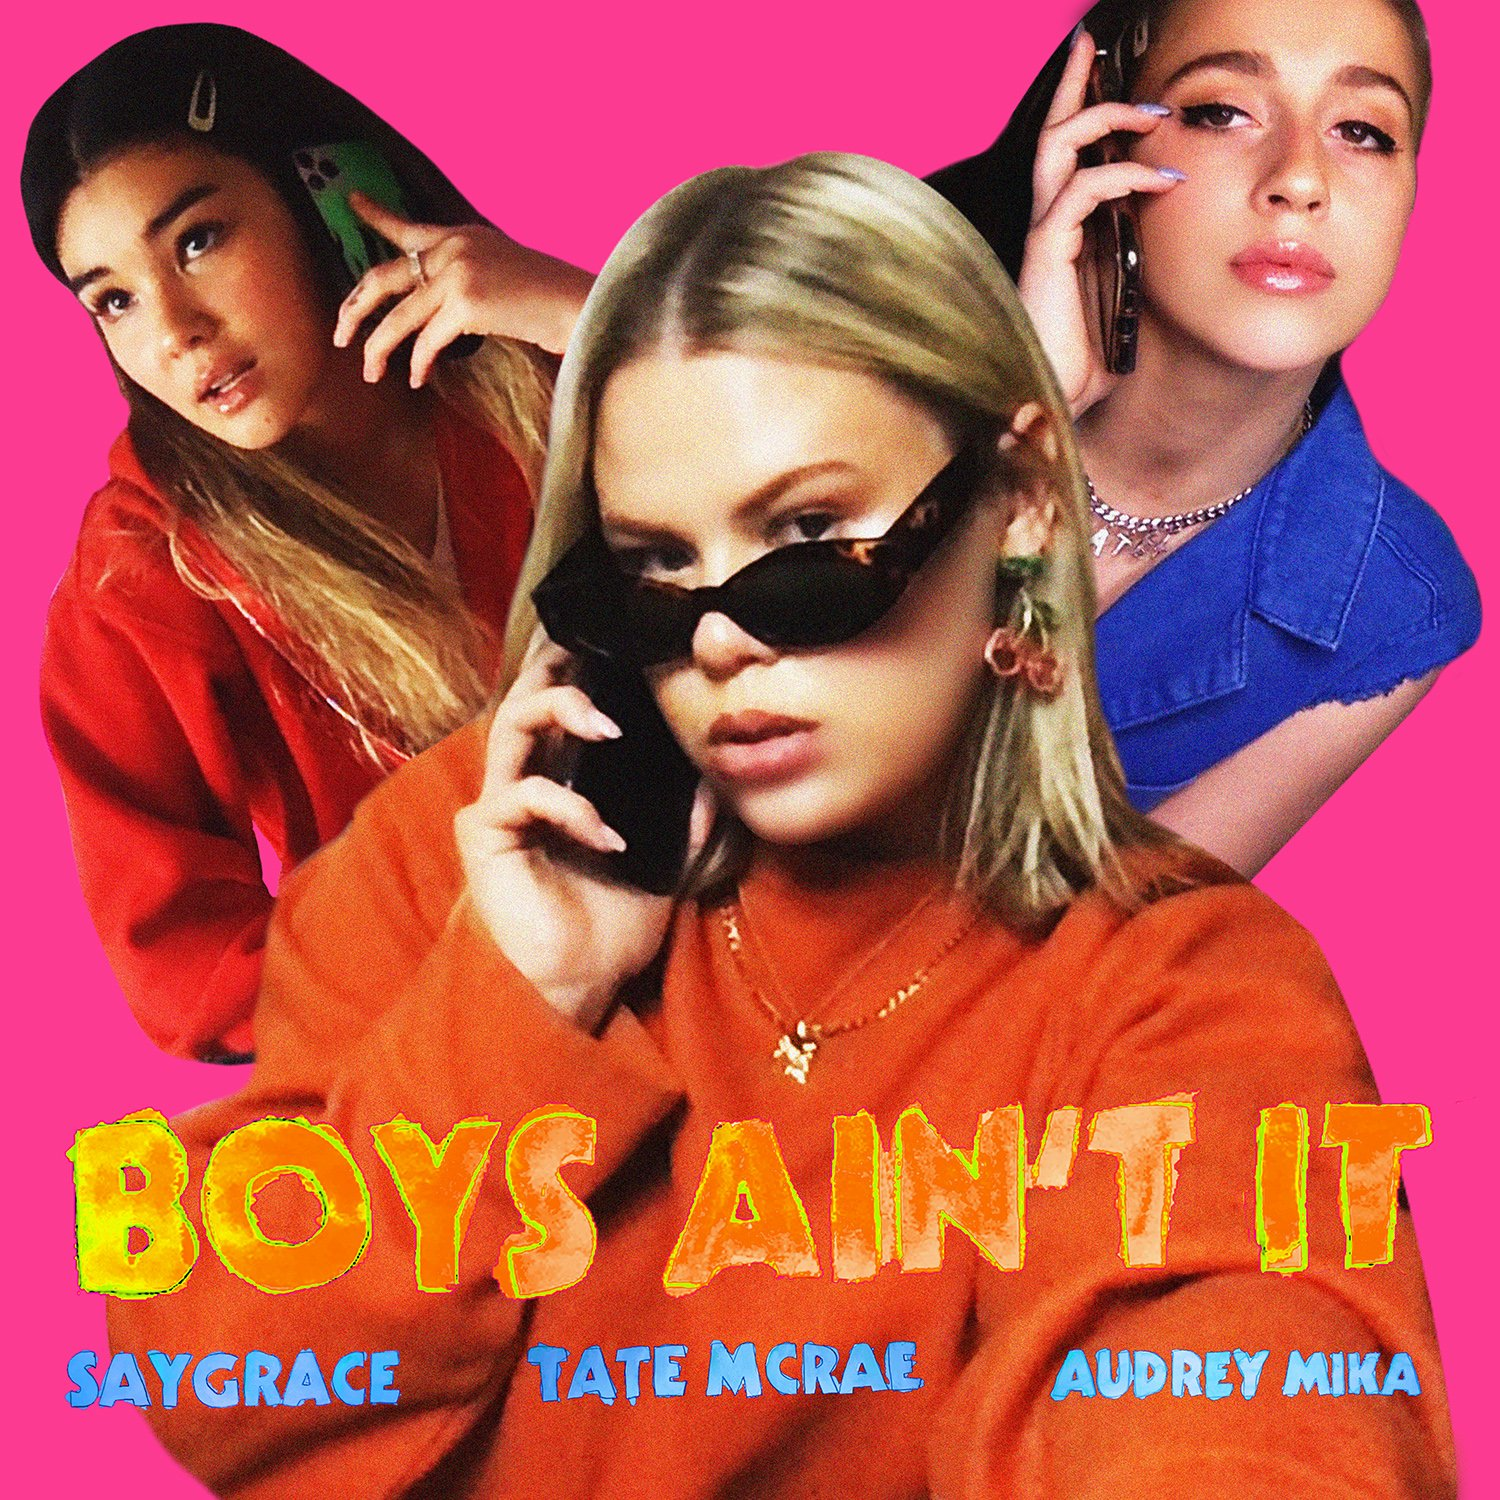 "Tate McRae & Audrey Mika Join SAYGRACE On A Brand New Version + Video of Chart-Topping Single ""Boys Ain't Shit"" Out Today"